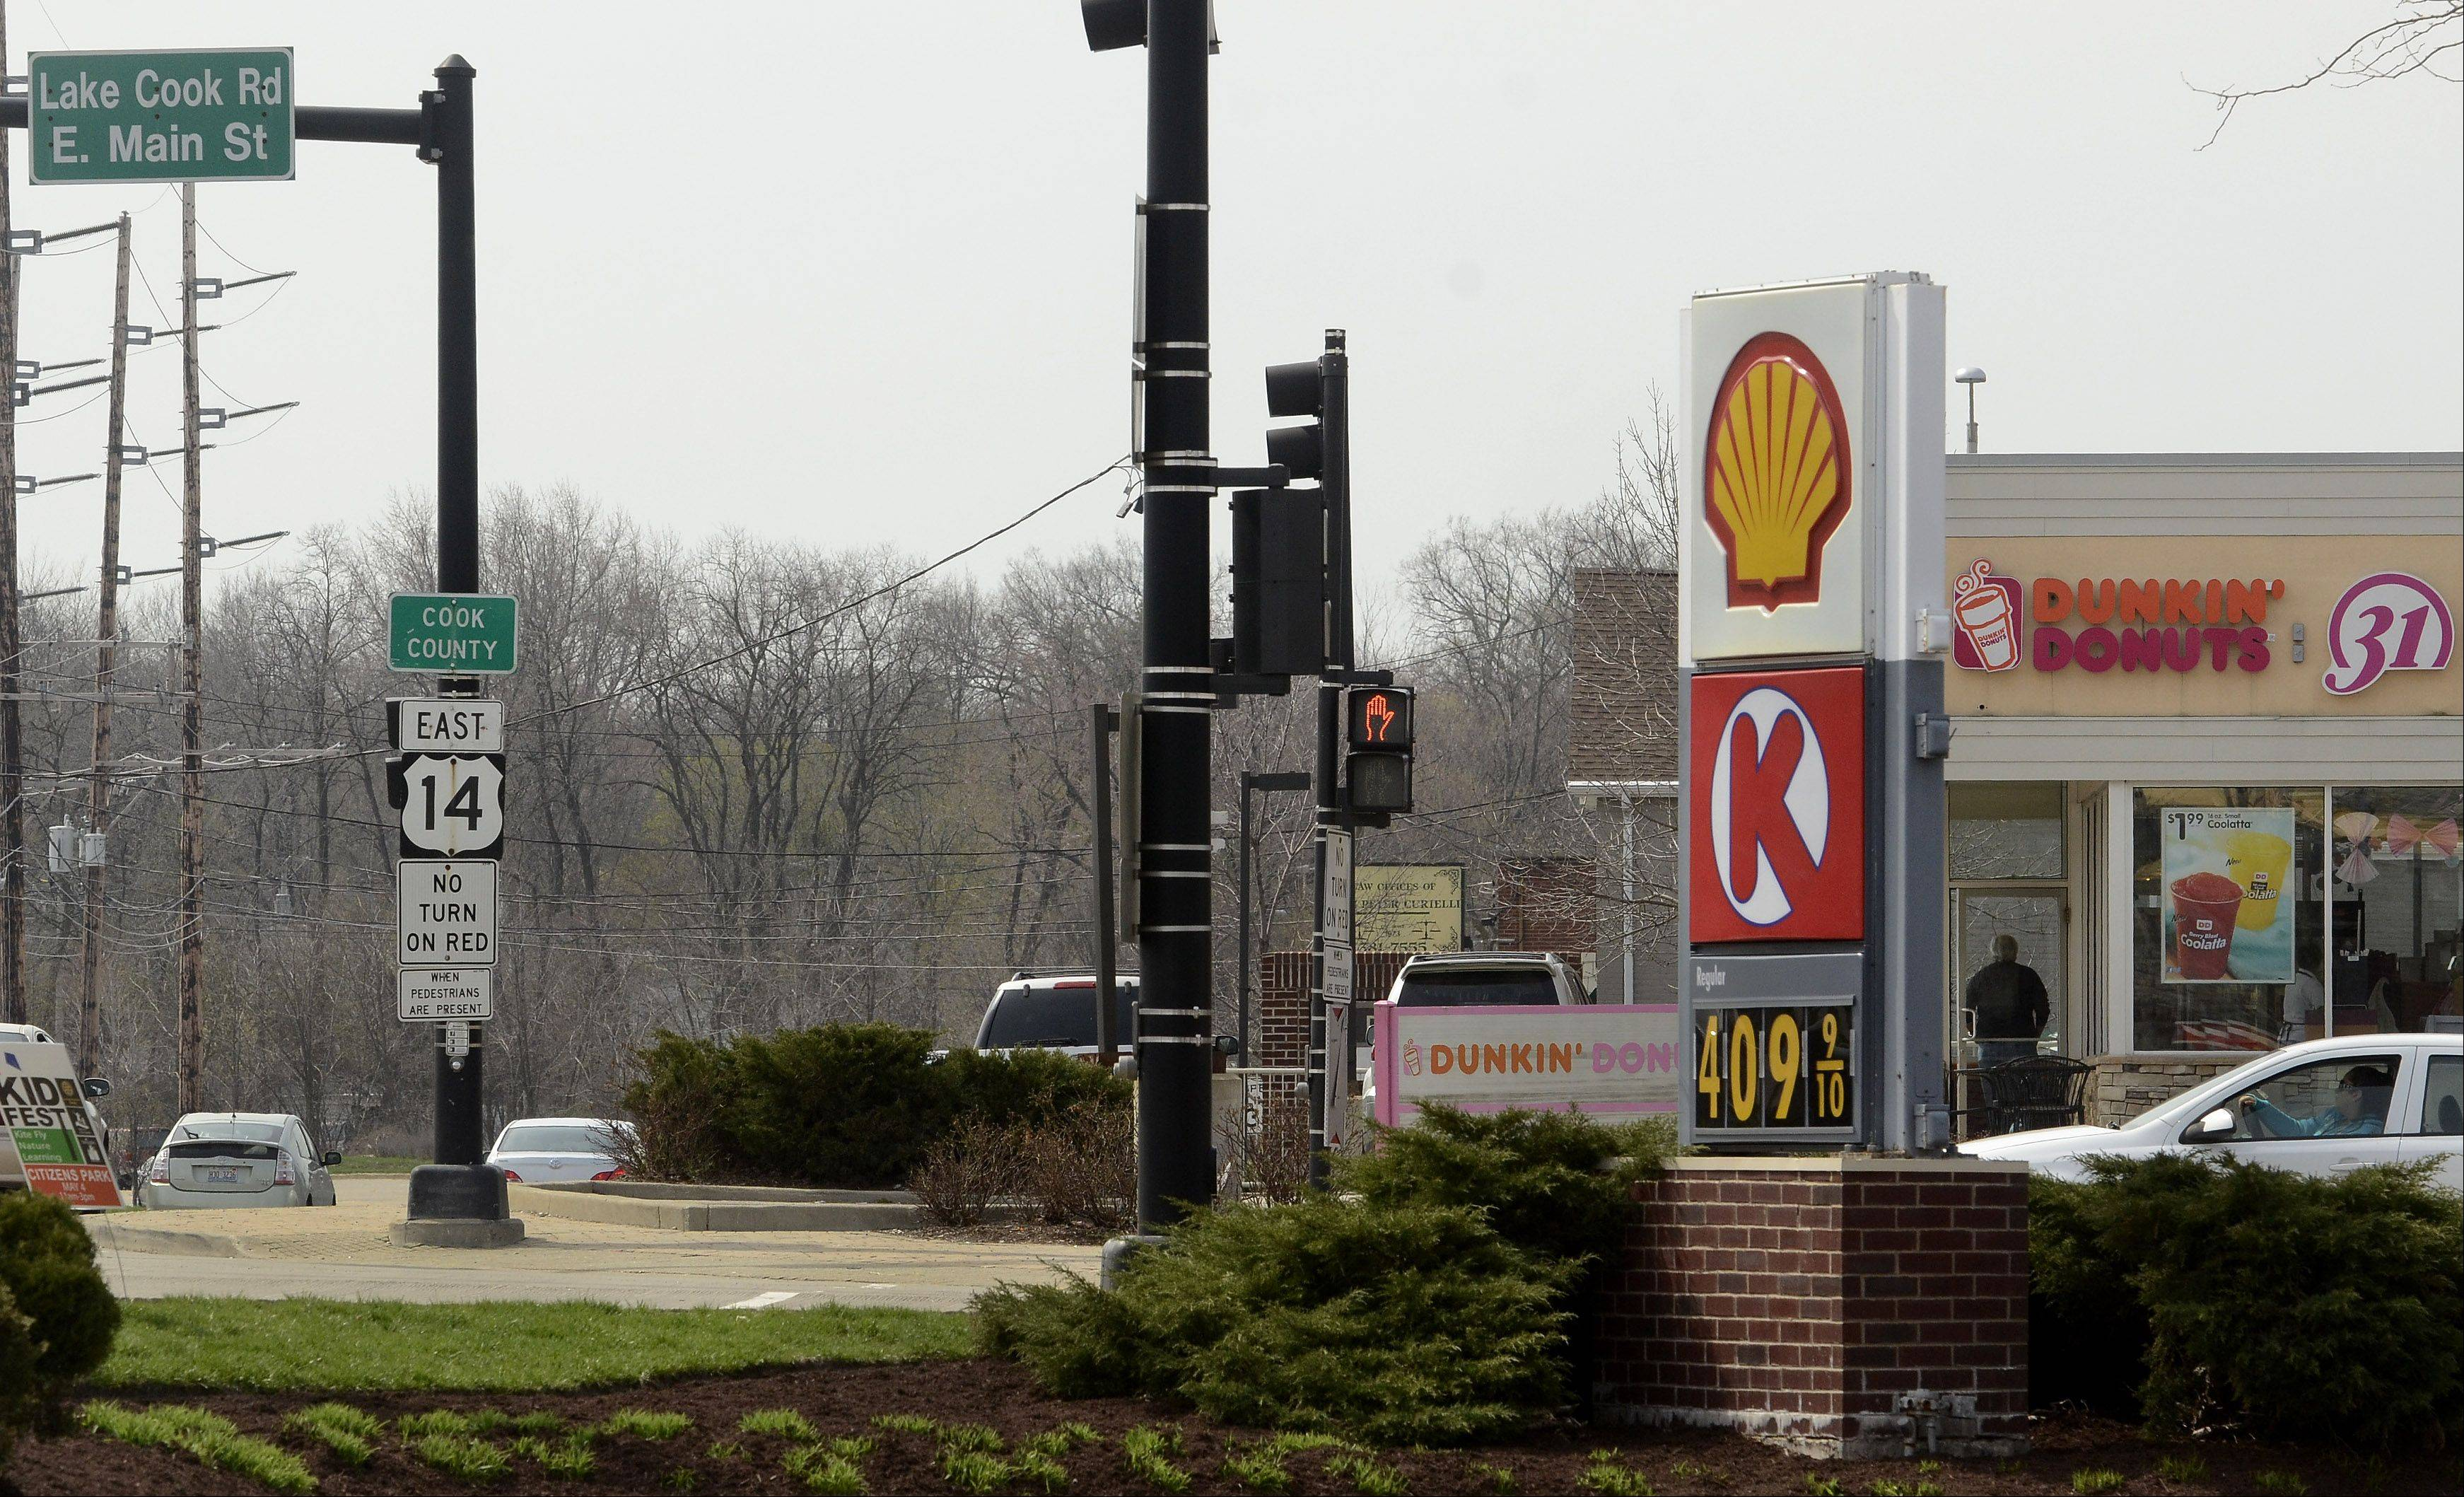 Under a proposal to allow concealed carry except in Cook County, customers of a Shell station on Lake-Cook Road in Barrington could legally carry weapons, while visitors to a Dunkin' Donuts across the street would be barred from carrying guns.